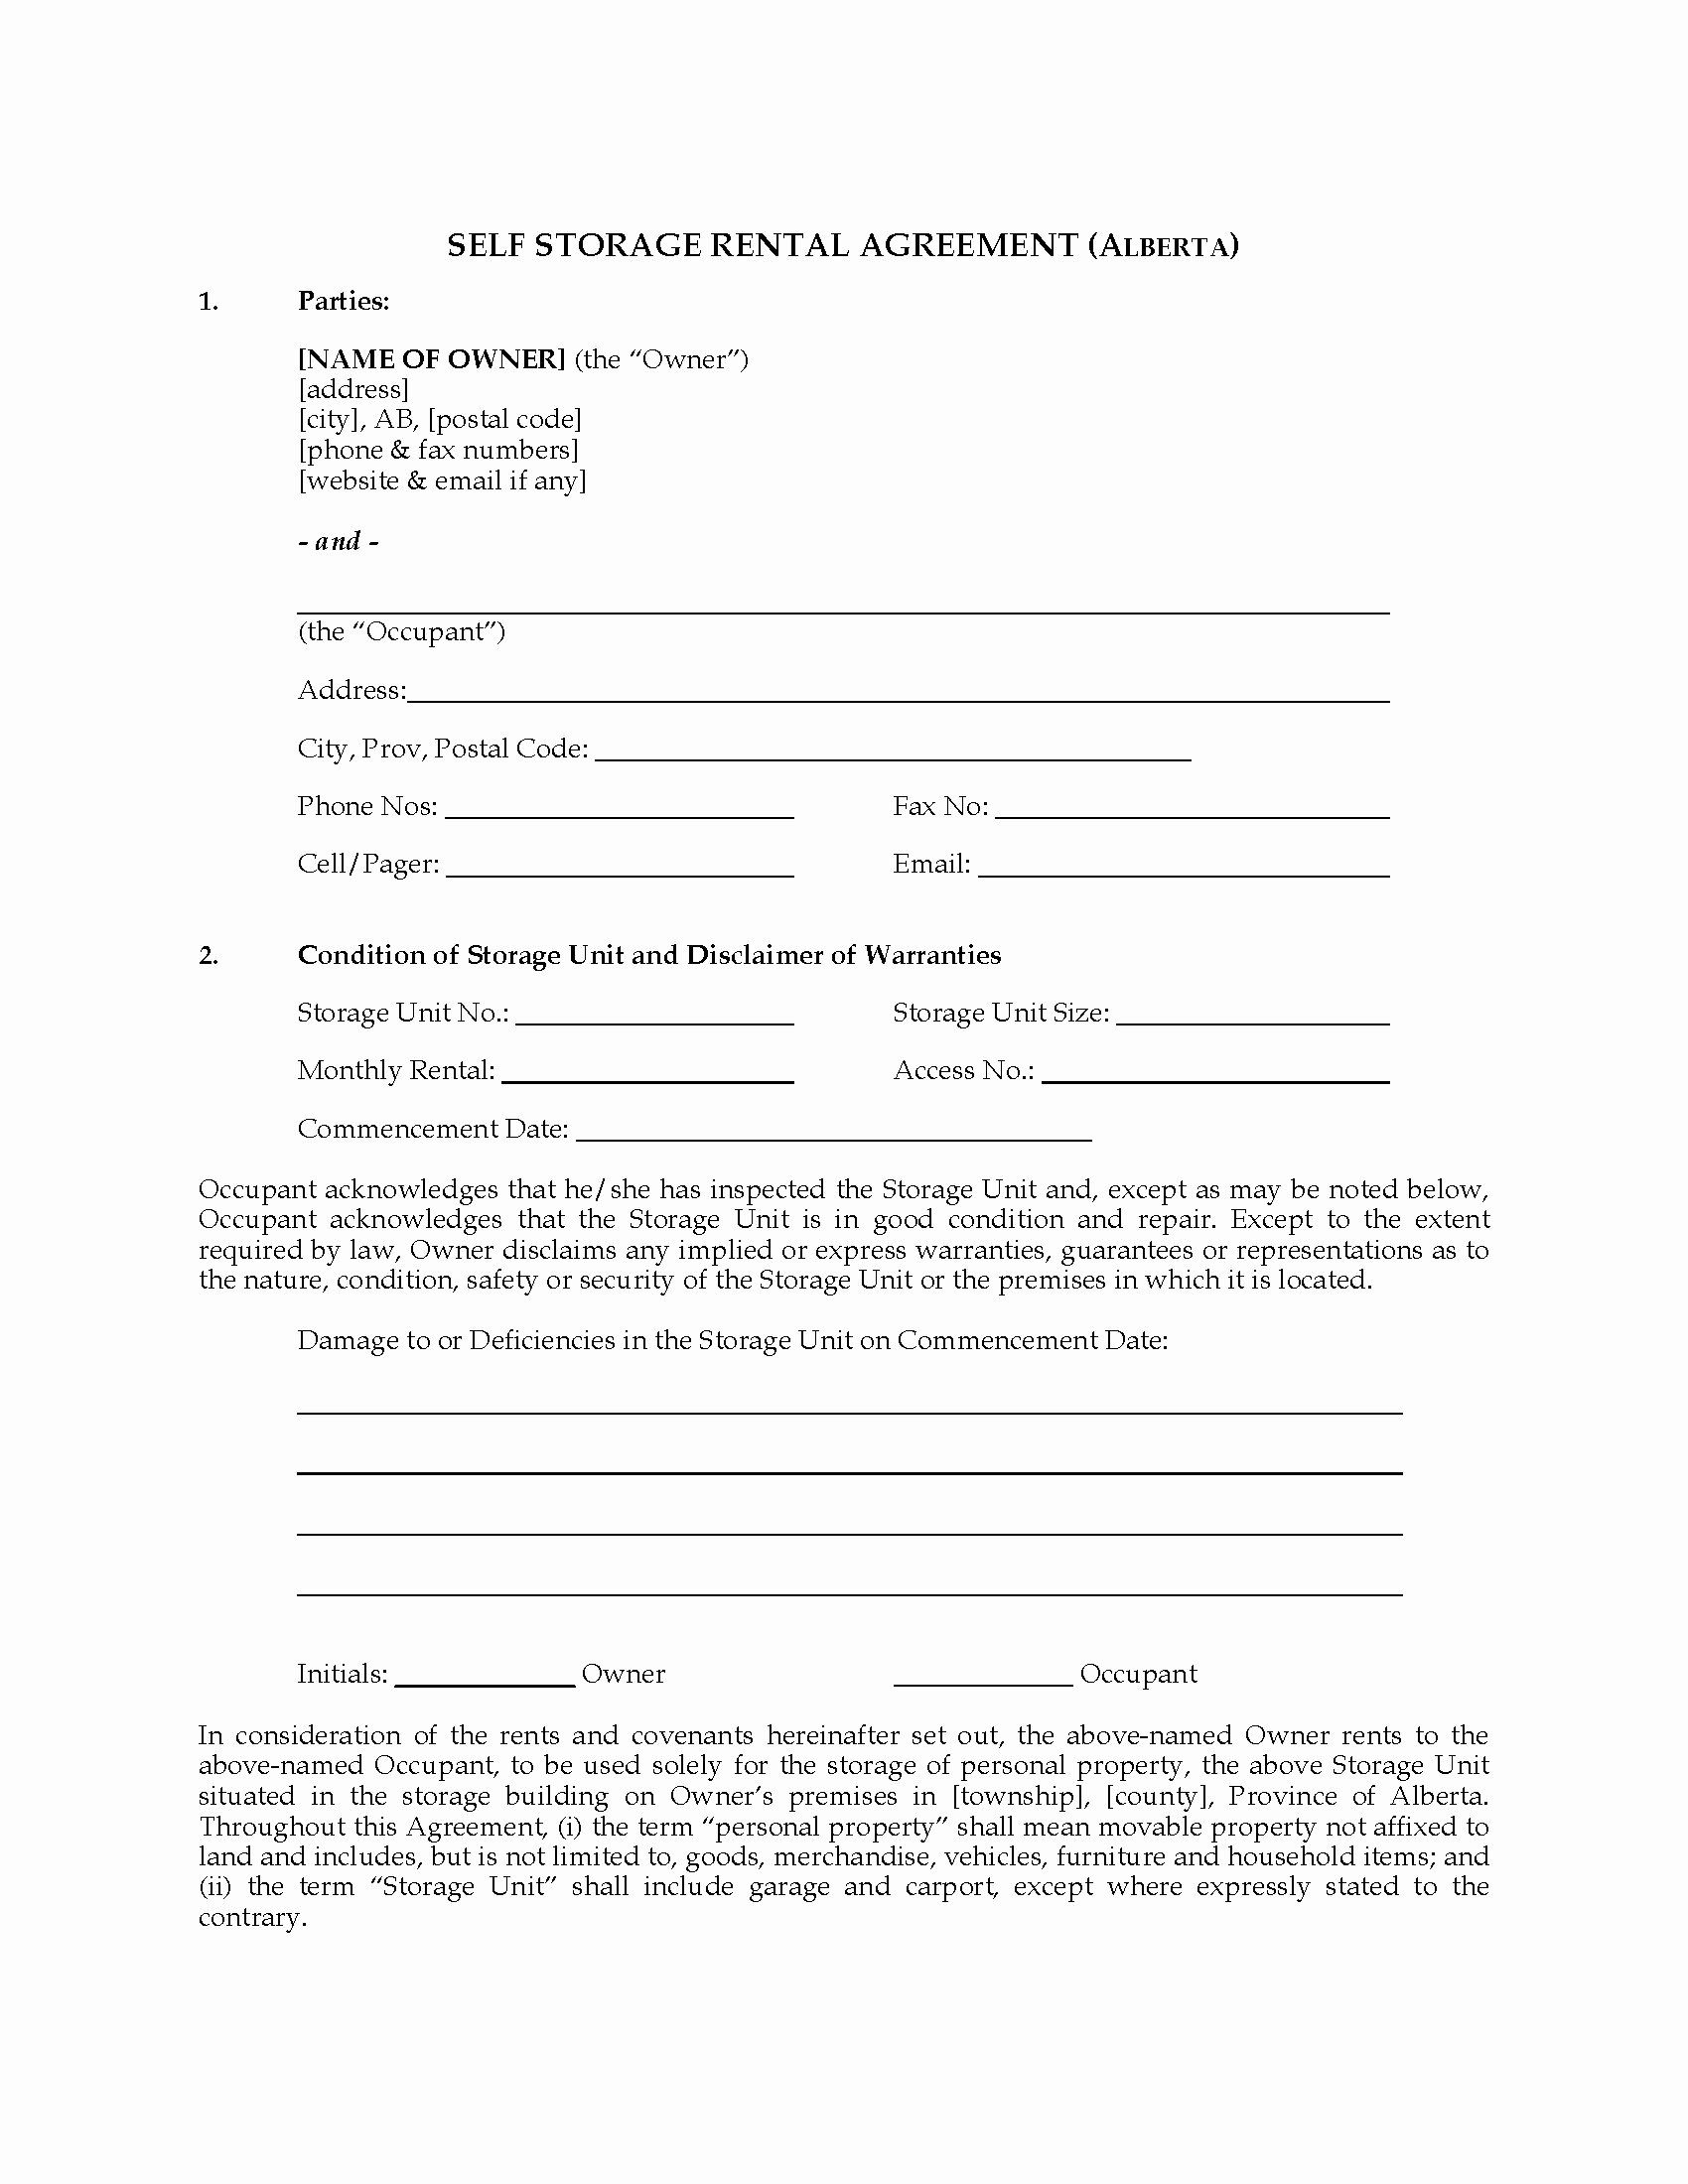 Vehicle Storage Agreement Template Awesome Alberta Self Storage Rental Agreement